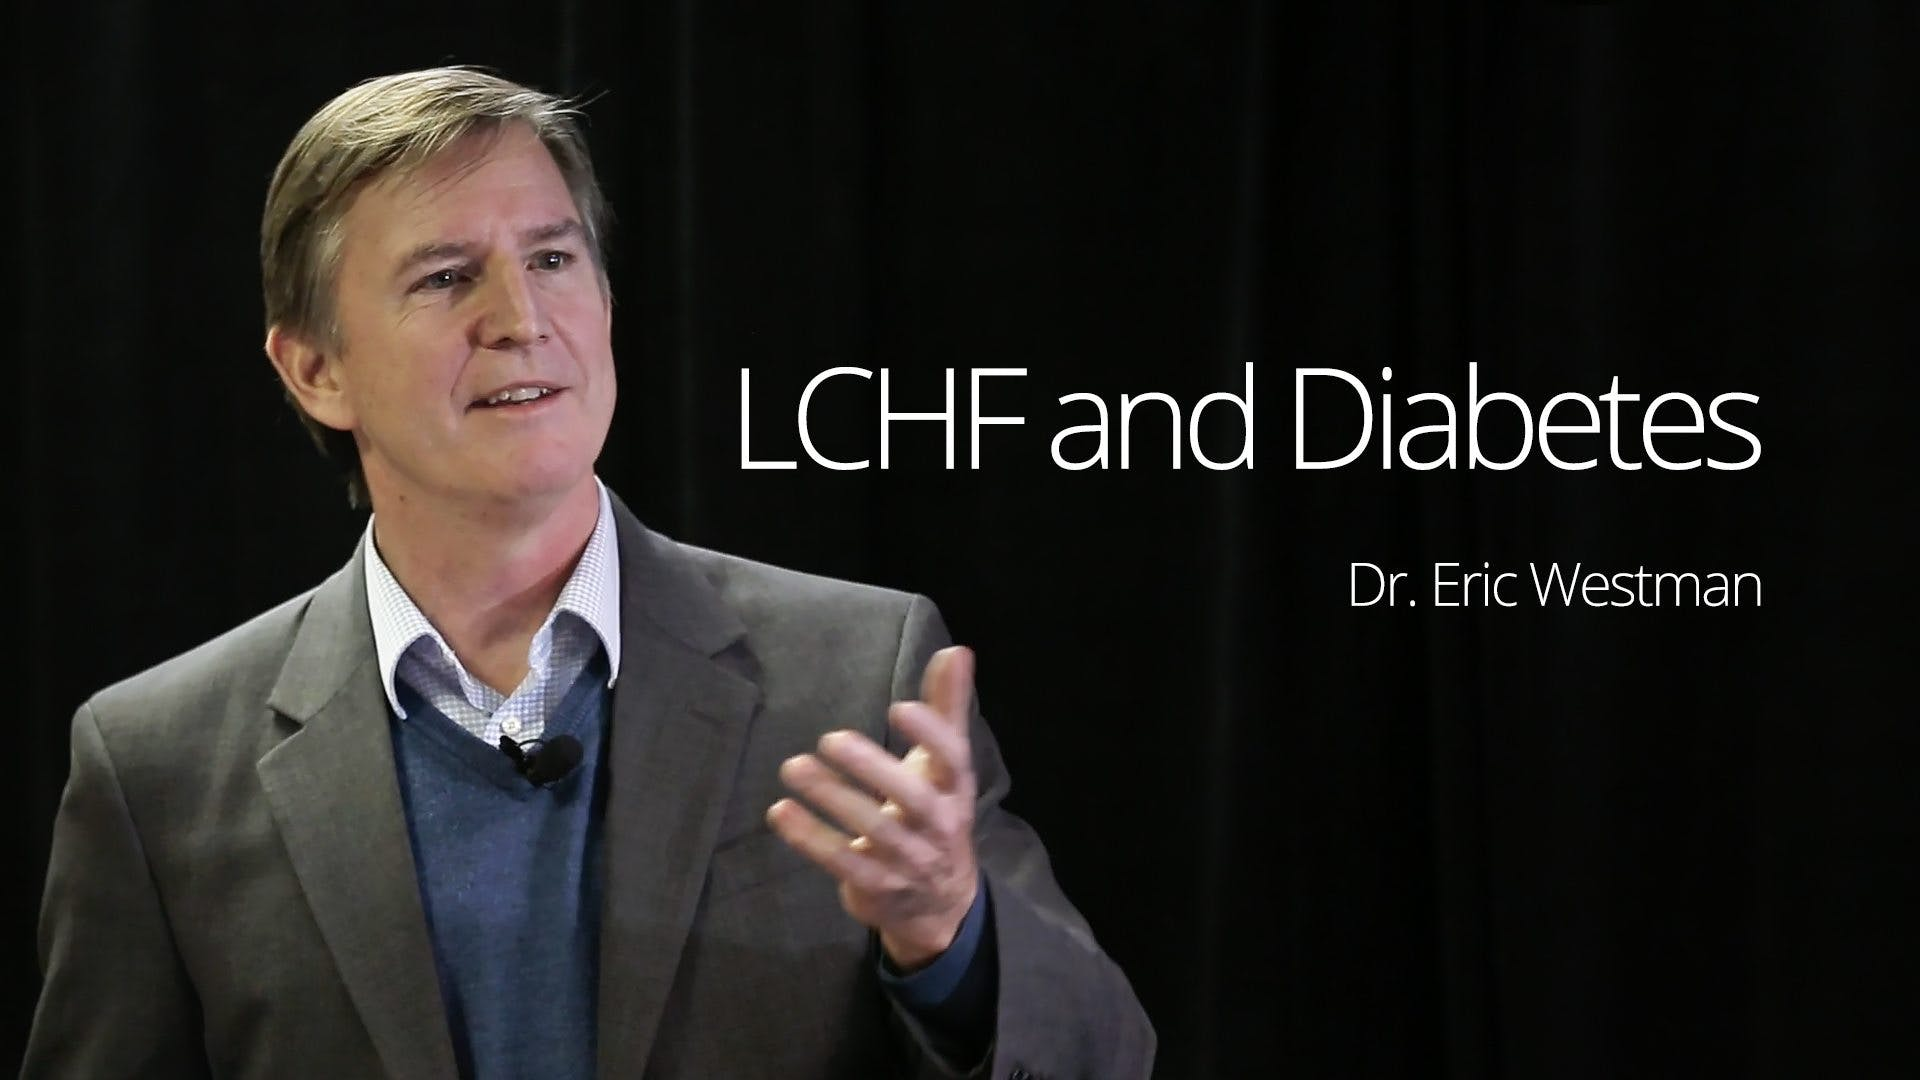 LCHF and Diabetes – Dr. Eric Westman